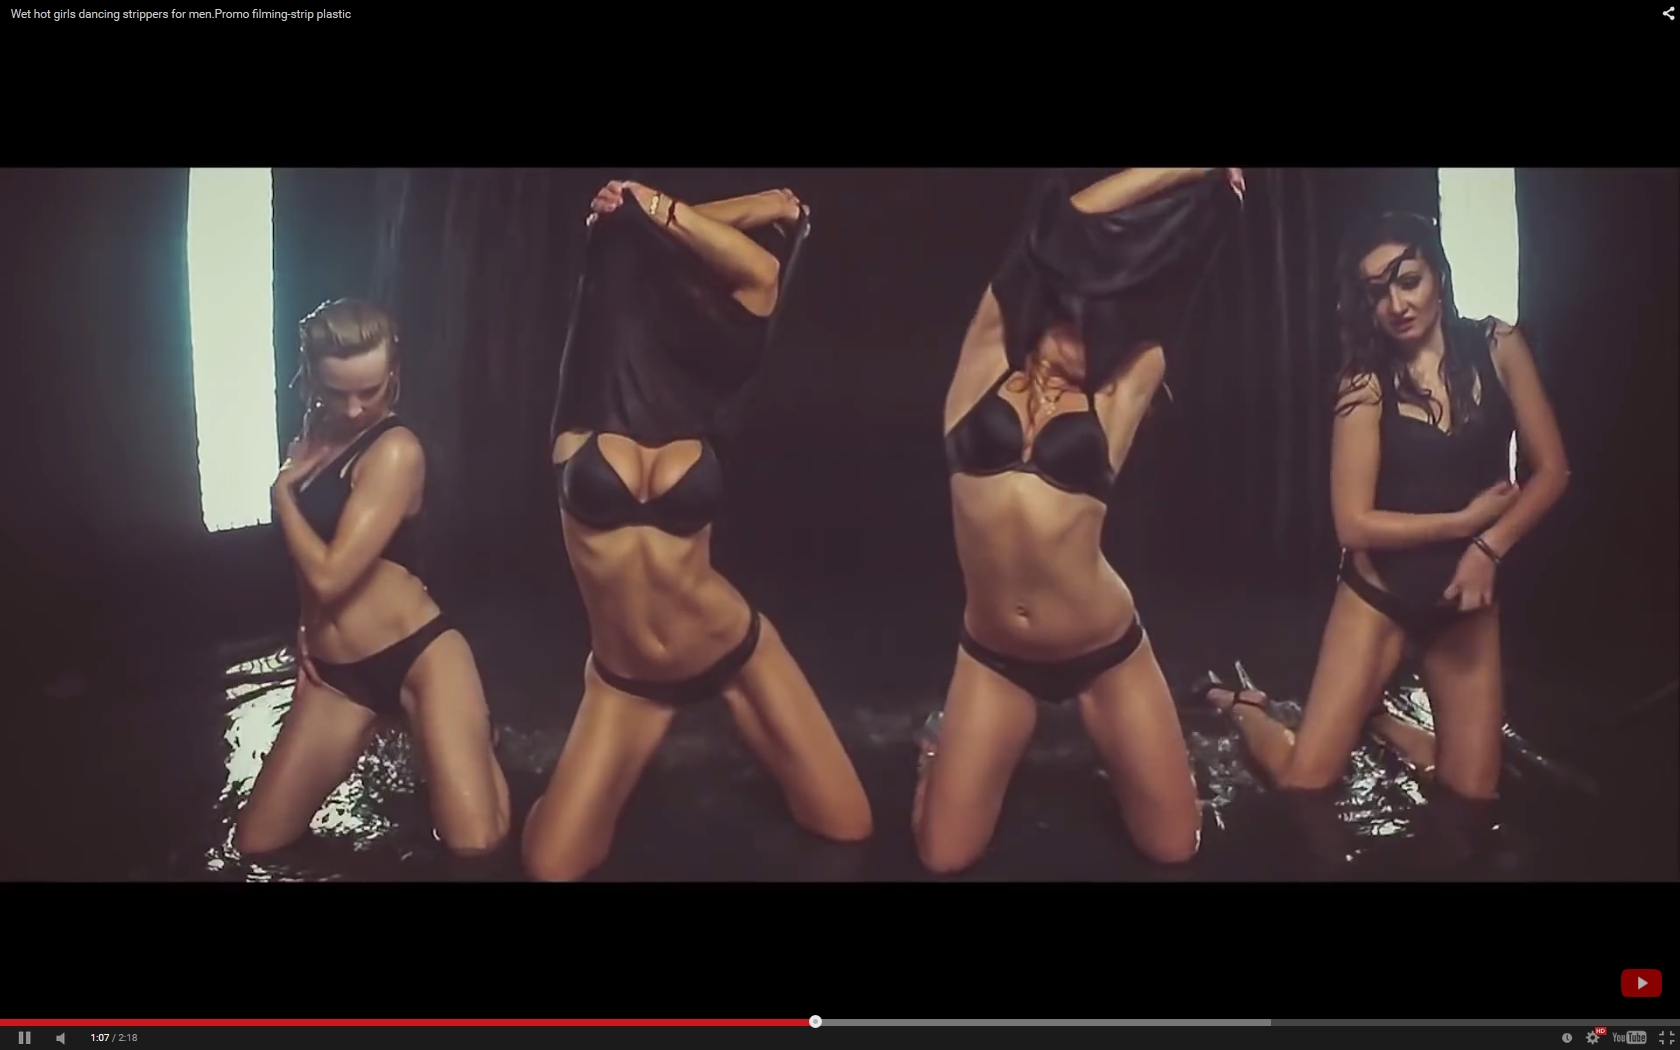 Four Hot Girls Perform a Strip Tease